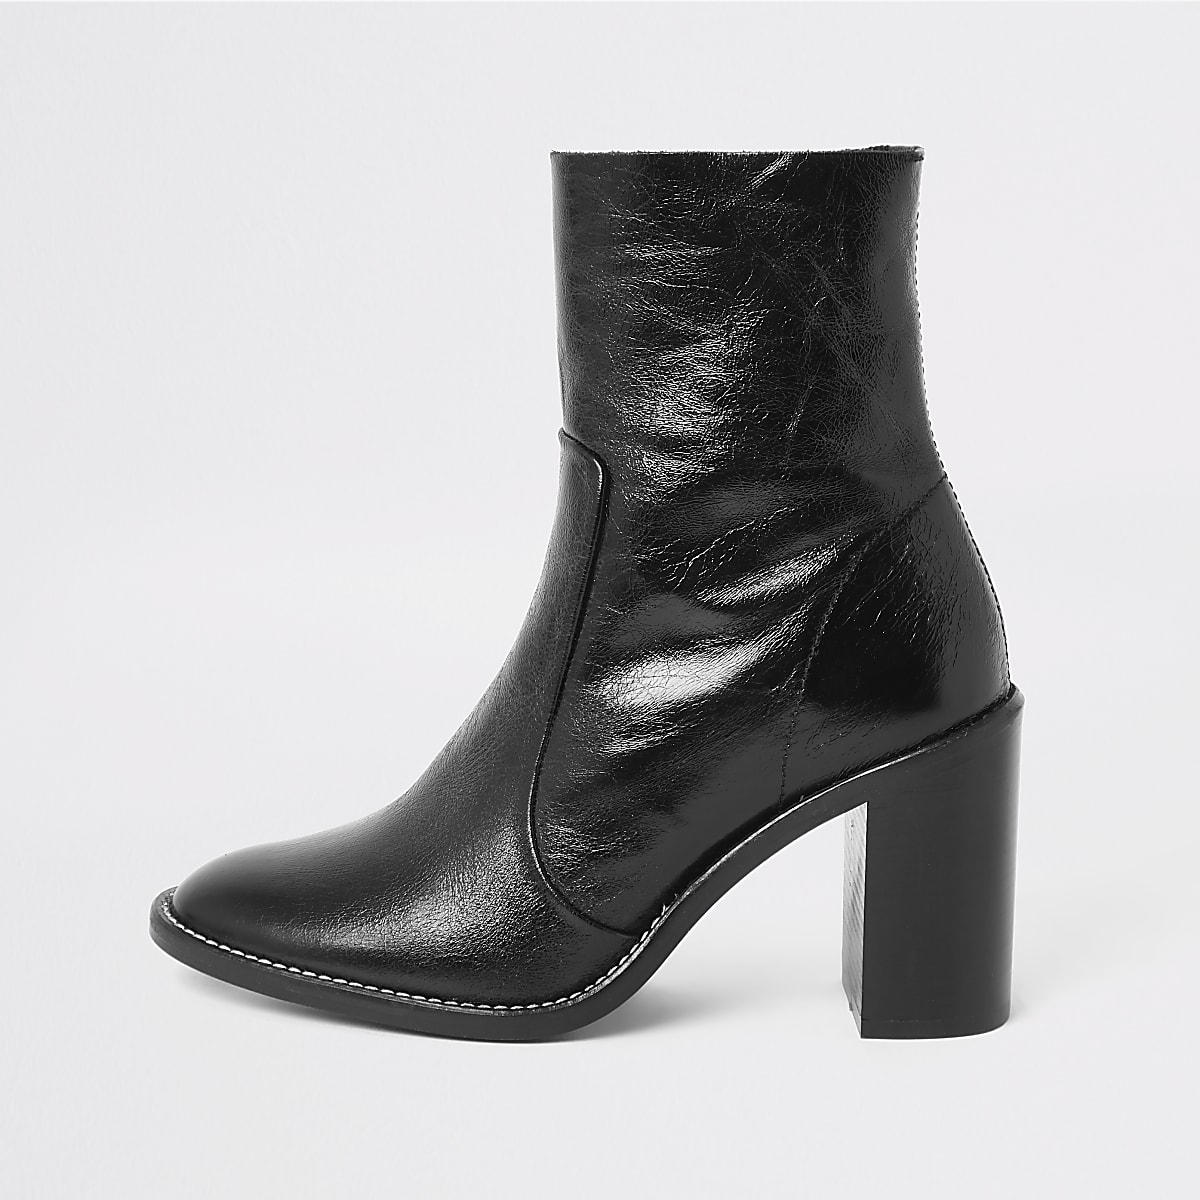 a6e05e821df28 Black leather heeled sock boots - Boots - Shoes & Boots - women